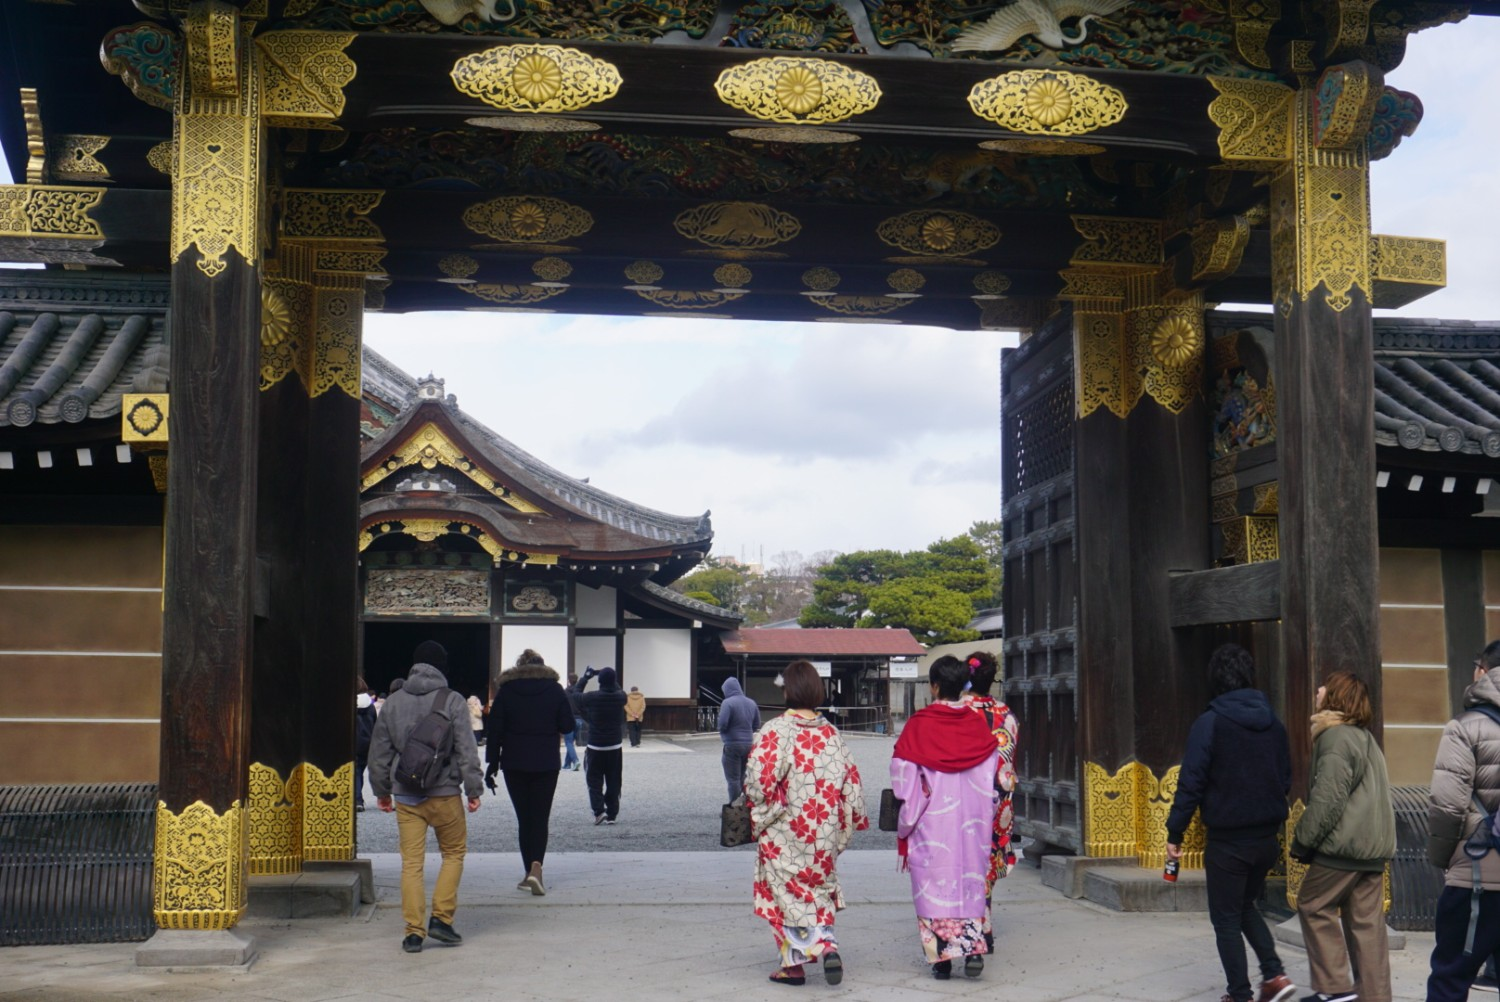 Nijo Castle is where the Shogun would work and reside, women dressed in traditional geisha enter along with the other tourists in Kyoto, Japan. boldlygotravel.com